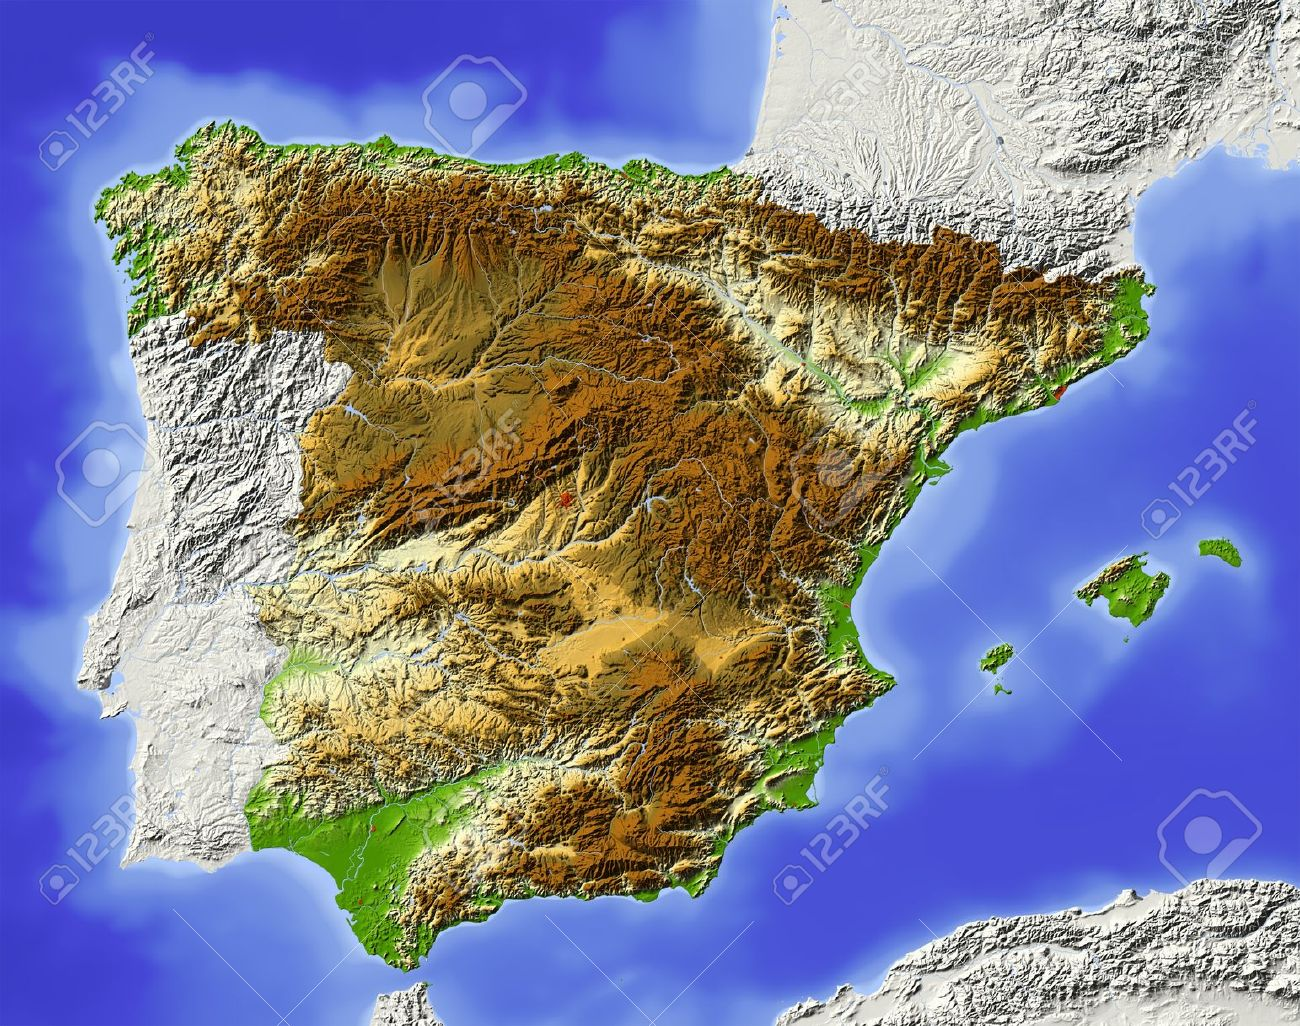 Elevation Map Of Spain.Spain Shaded Relief Map Surrounding Territory Greyed Out Colored